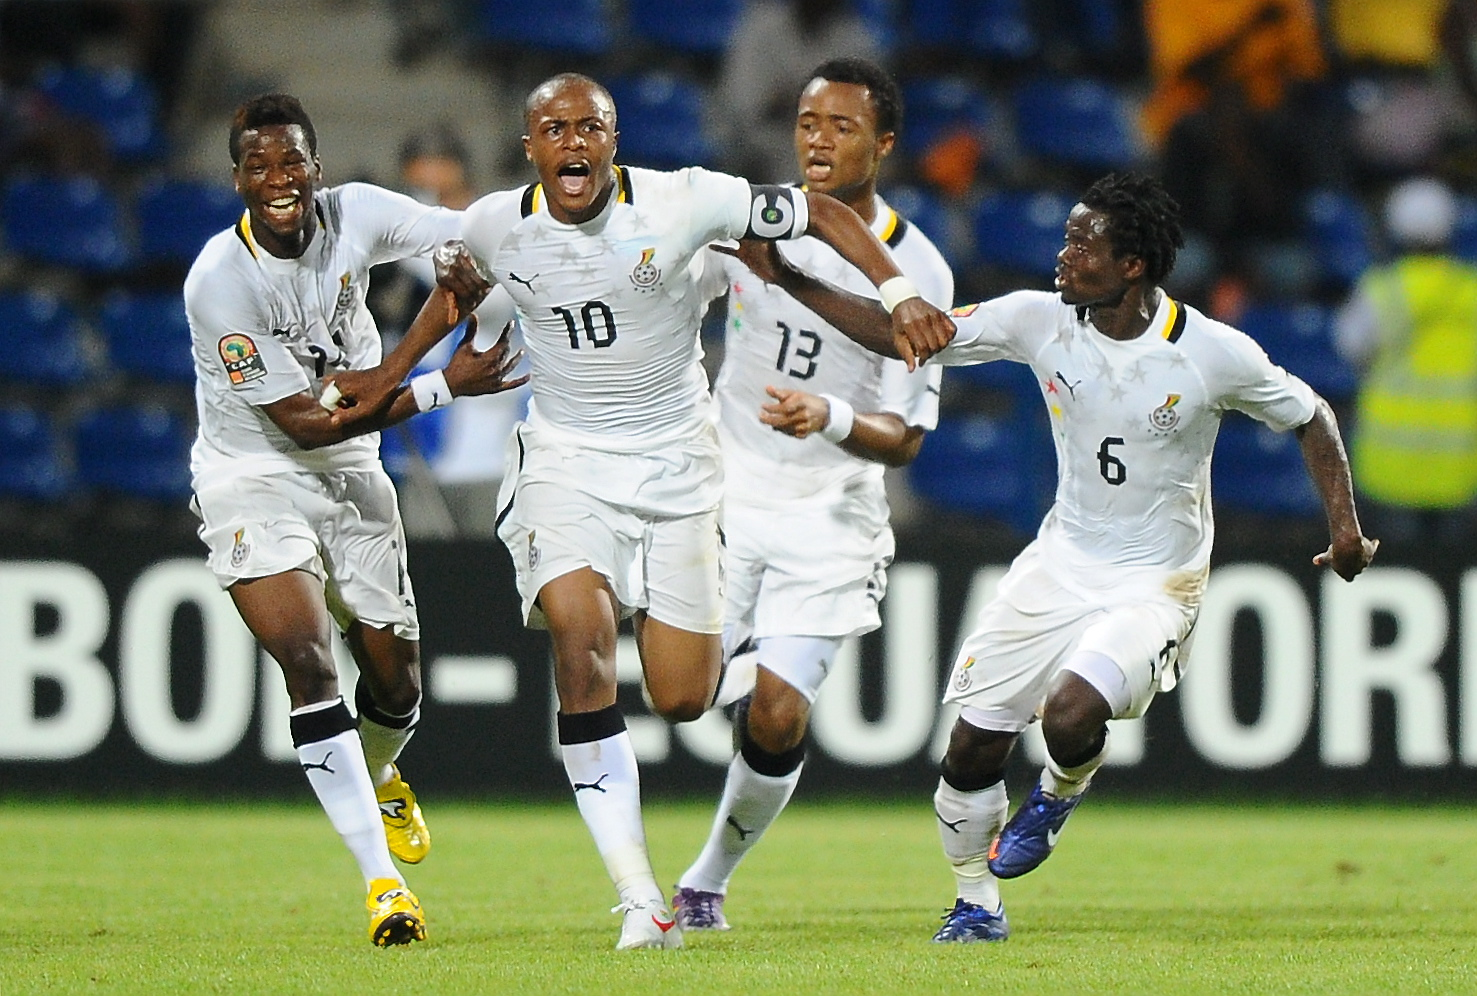 Match Allemagne Ghana en direct et streaming live